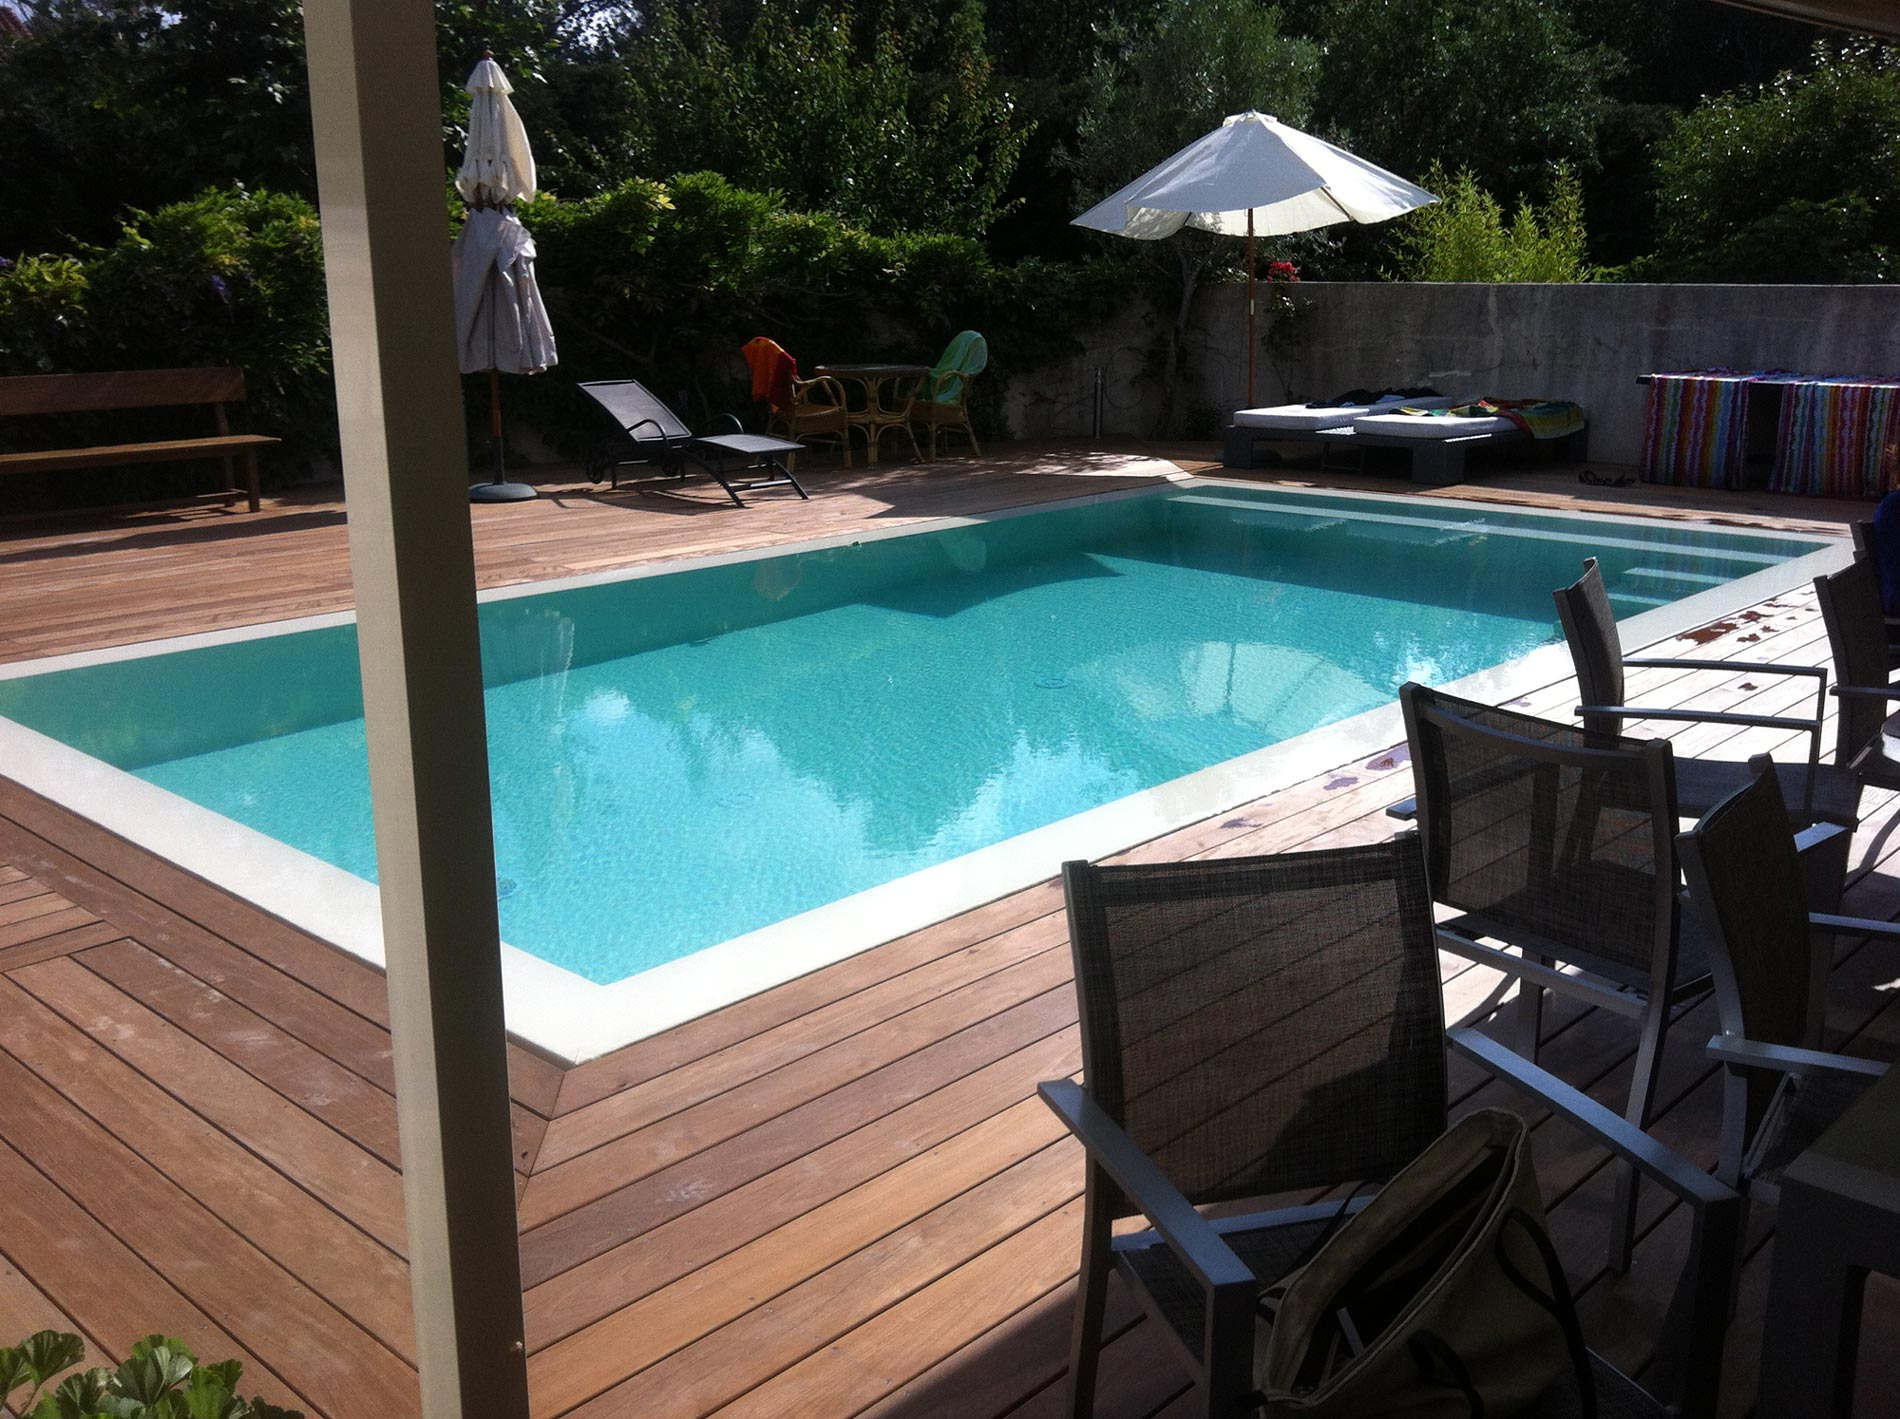 Construction neuve dml piscines pvc arm piscine for Construction piscine 22